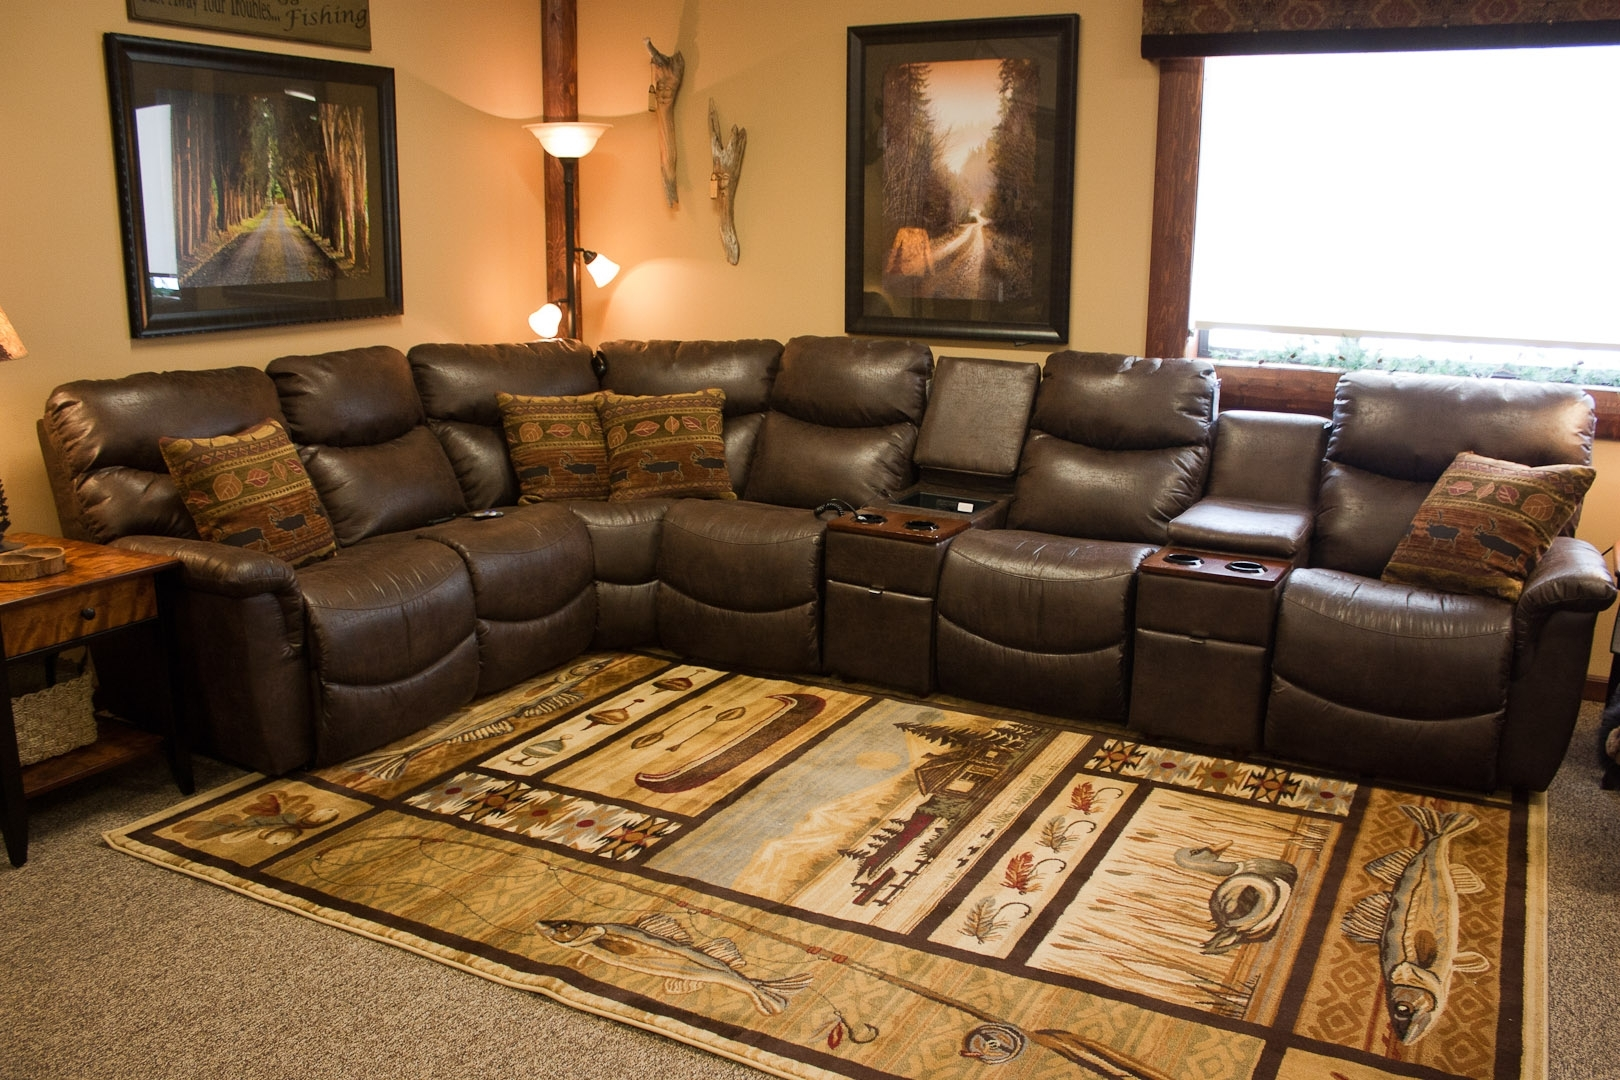 Lazy Boy Sectional Sofas | Lazy Boy Sectional Sofas With Recliners for Sectional Sofas at Lazy Boy (Image 12 of 15)